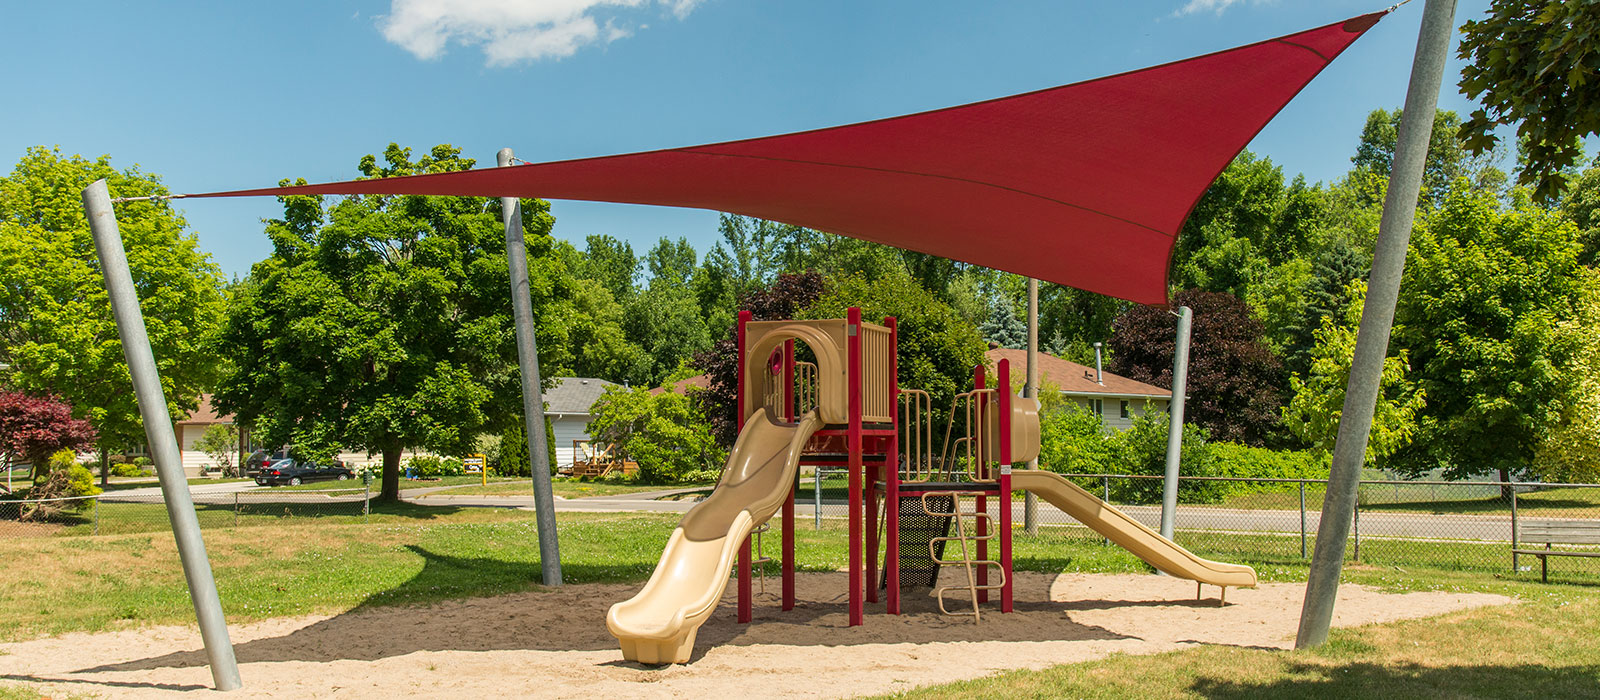 Shade Sail in a Playground